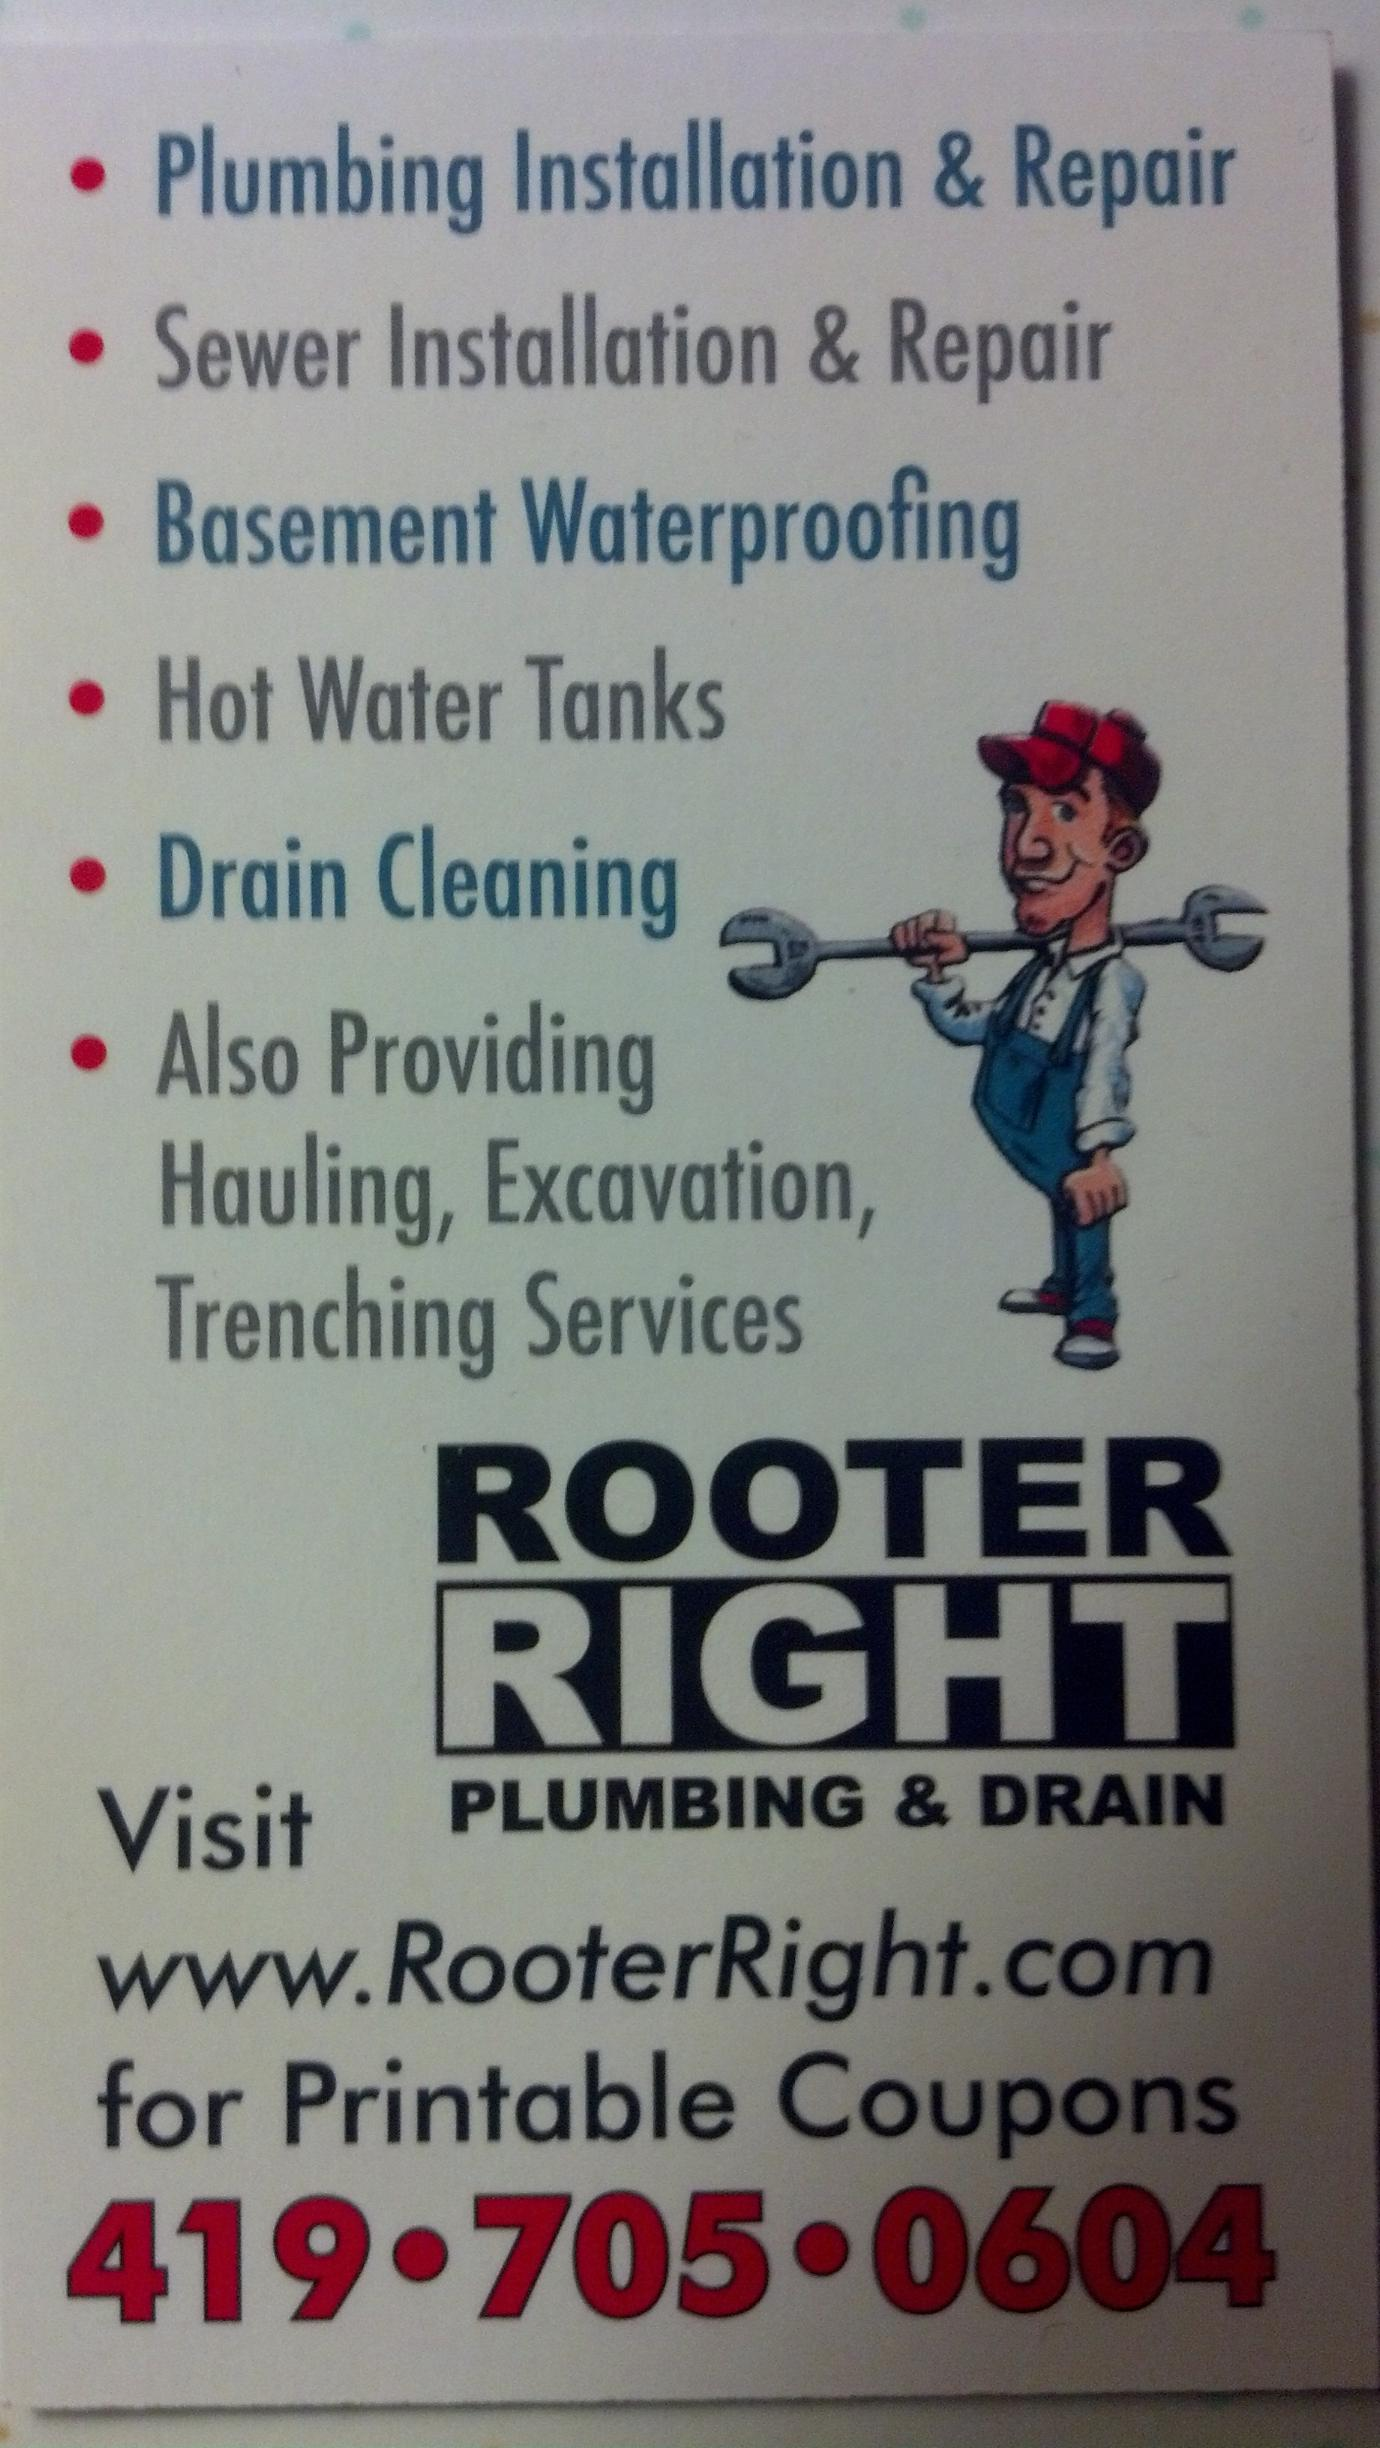 Rooter Right Plumbing and Drain